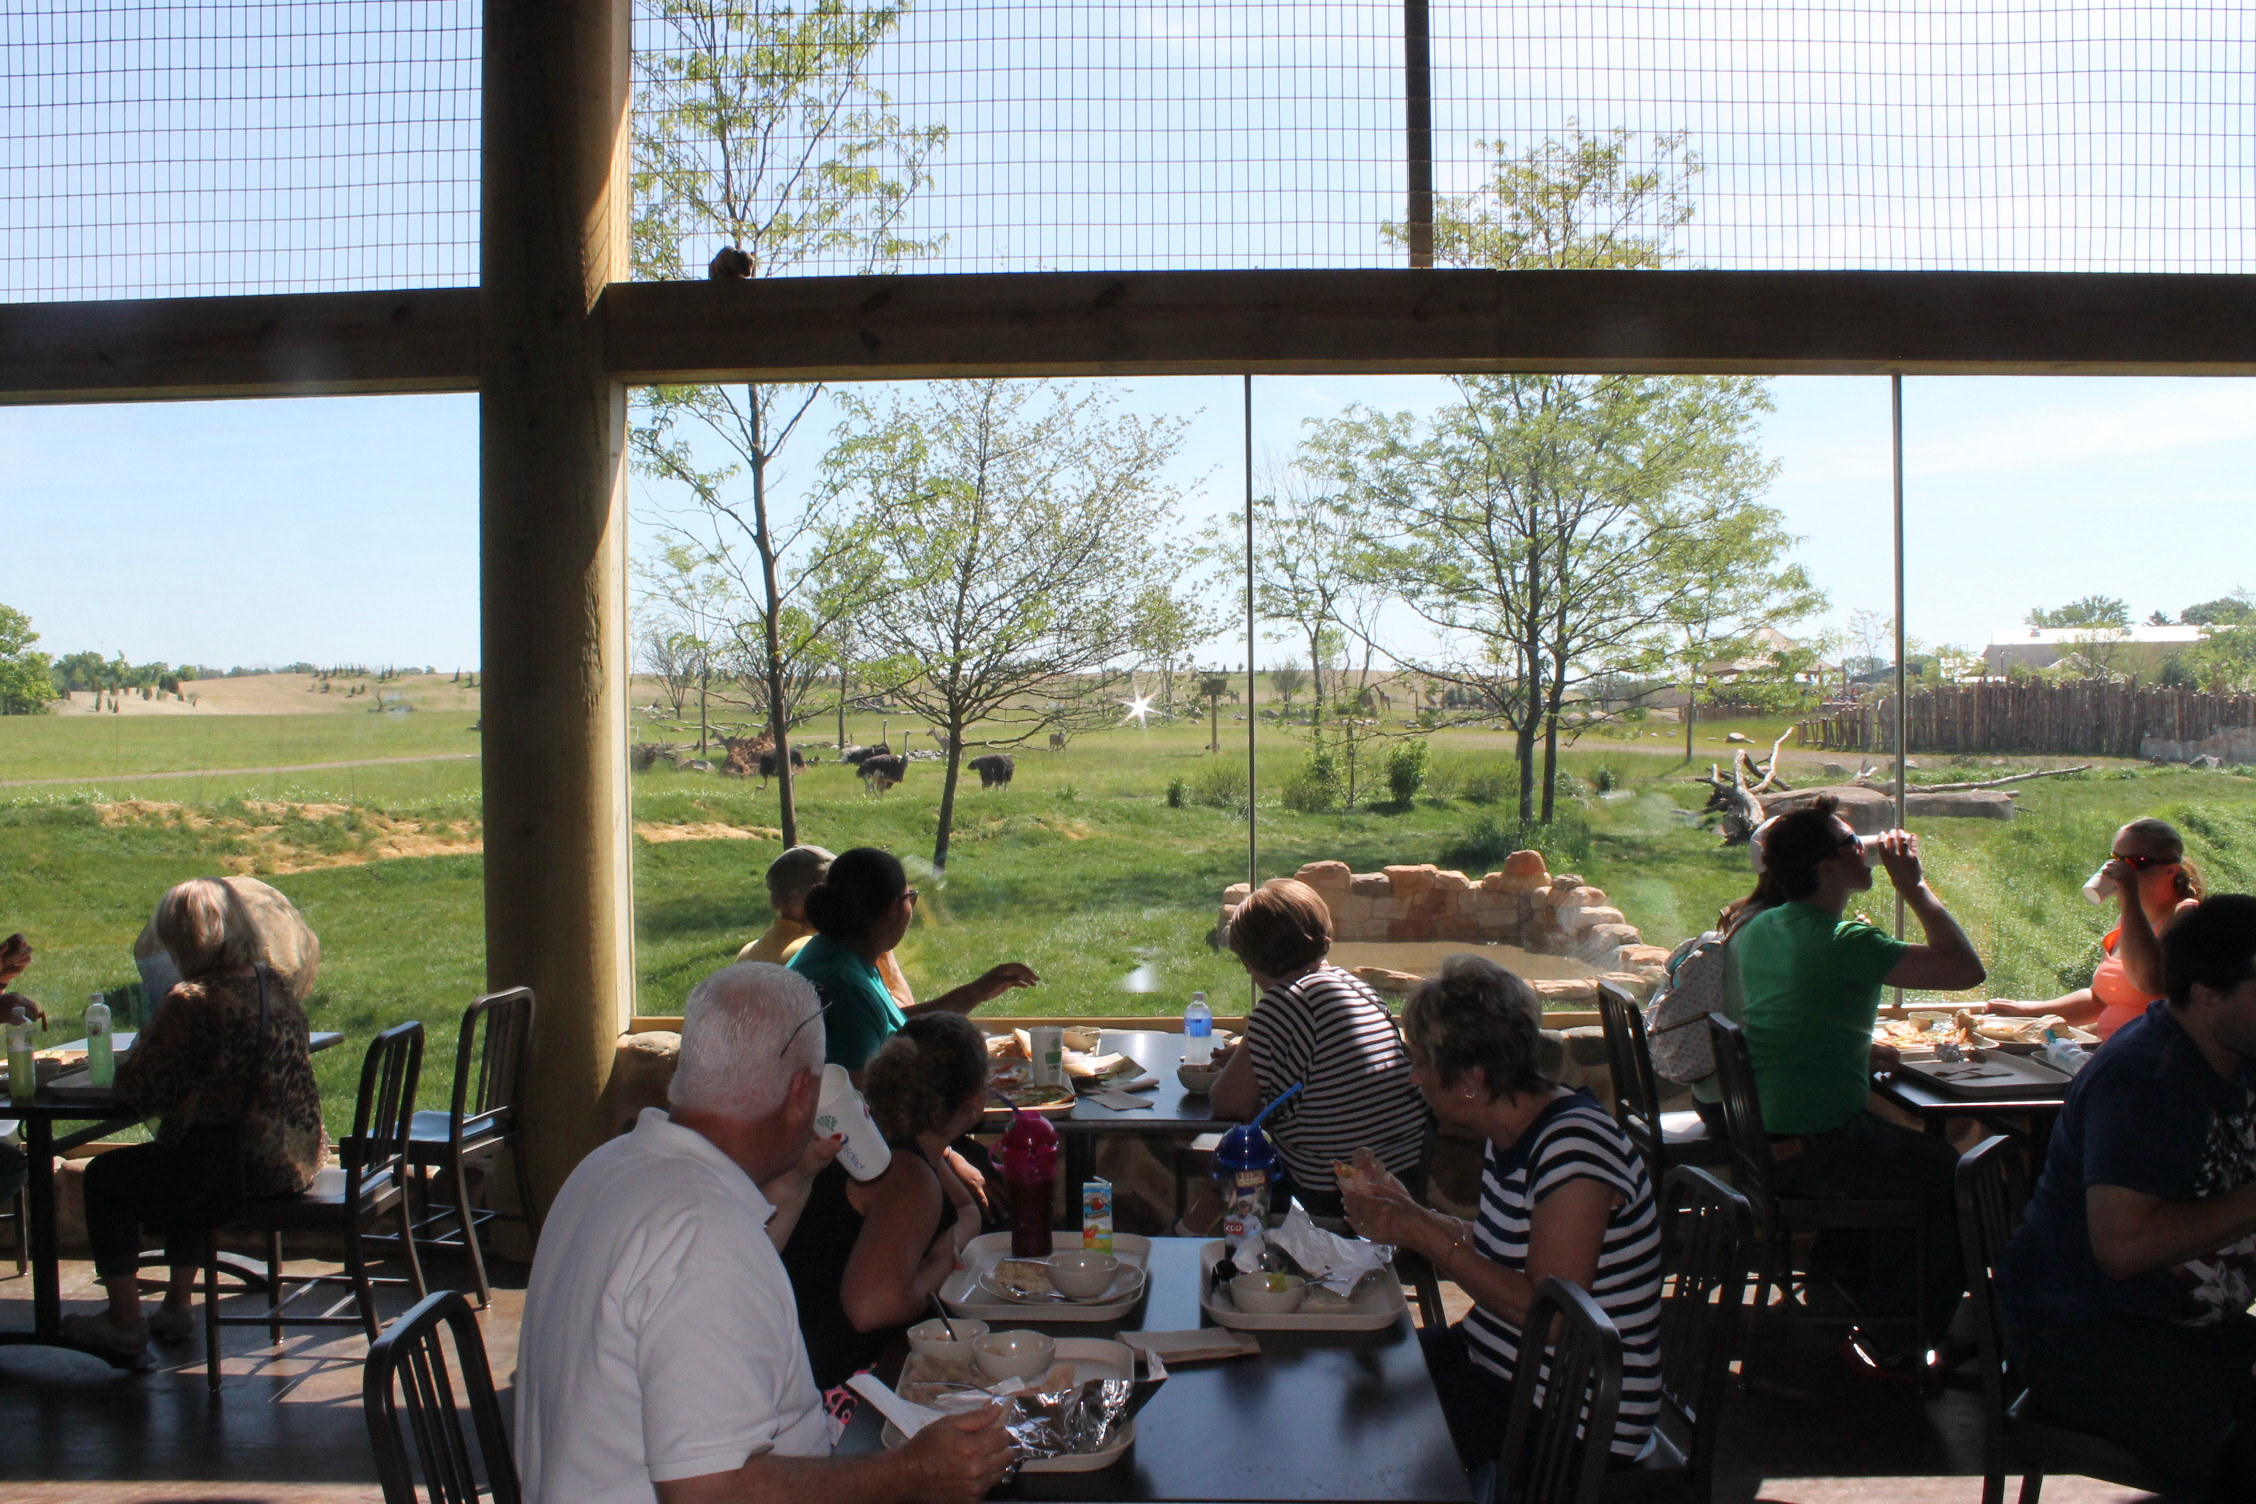 View from the restaurant to the lions and savanna beyond.